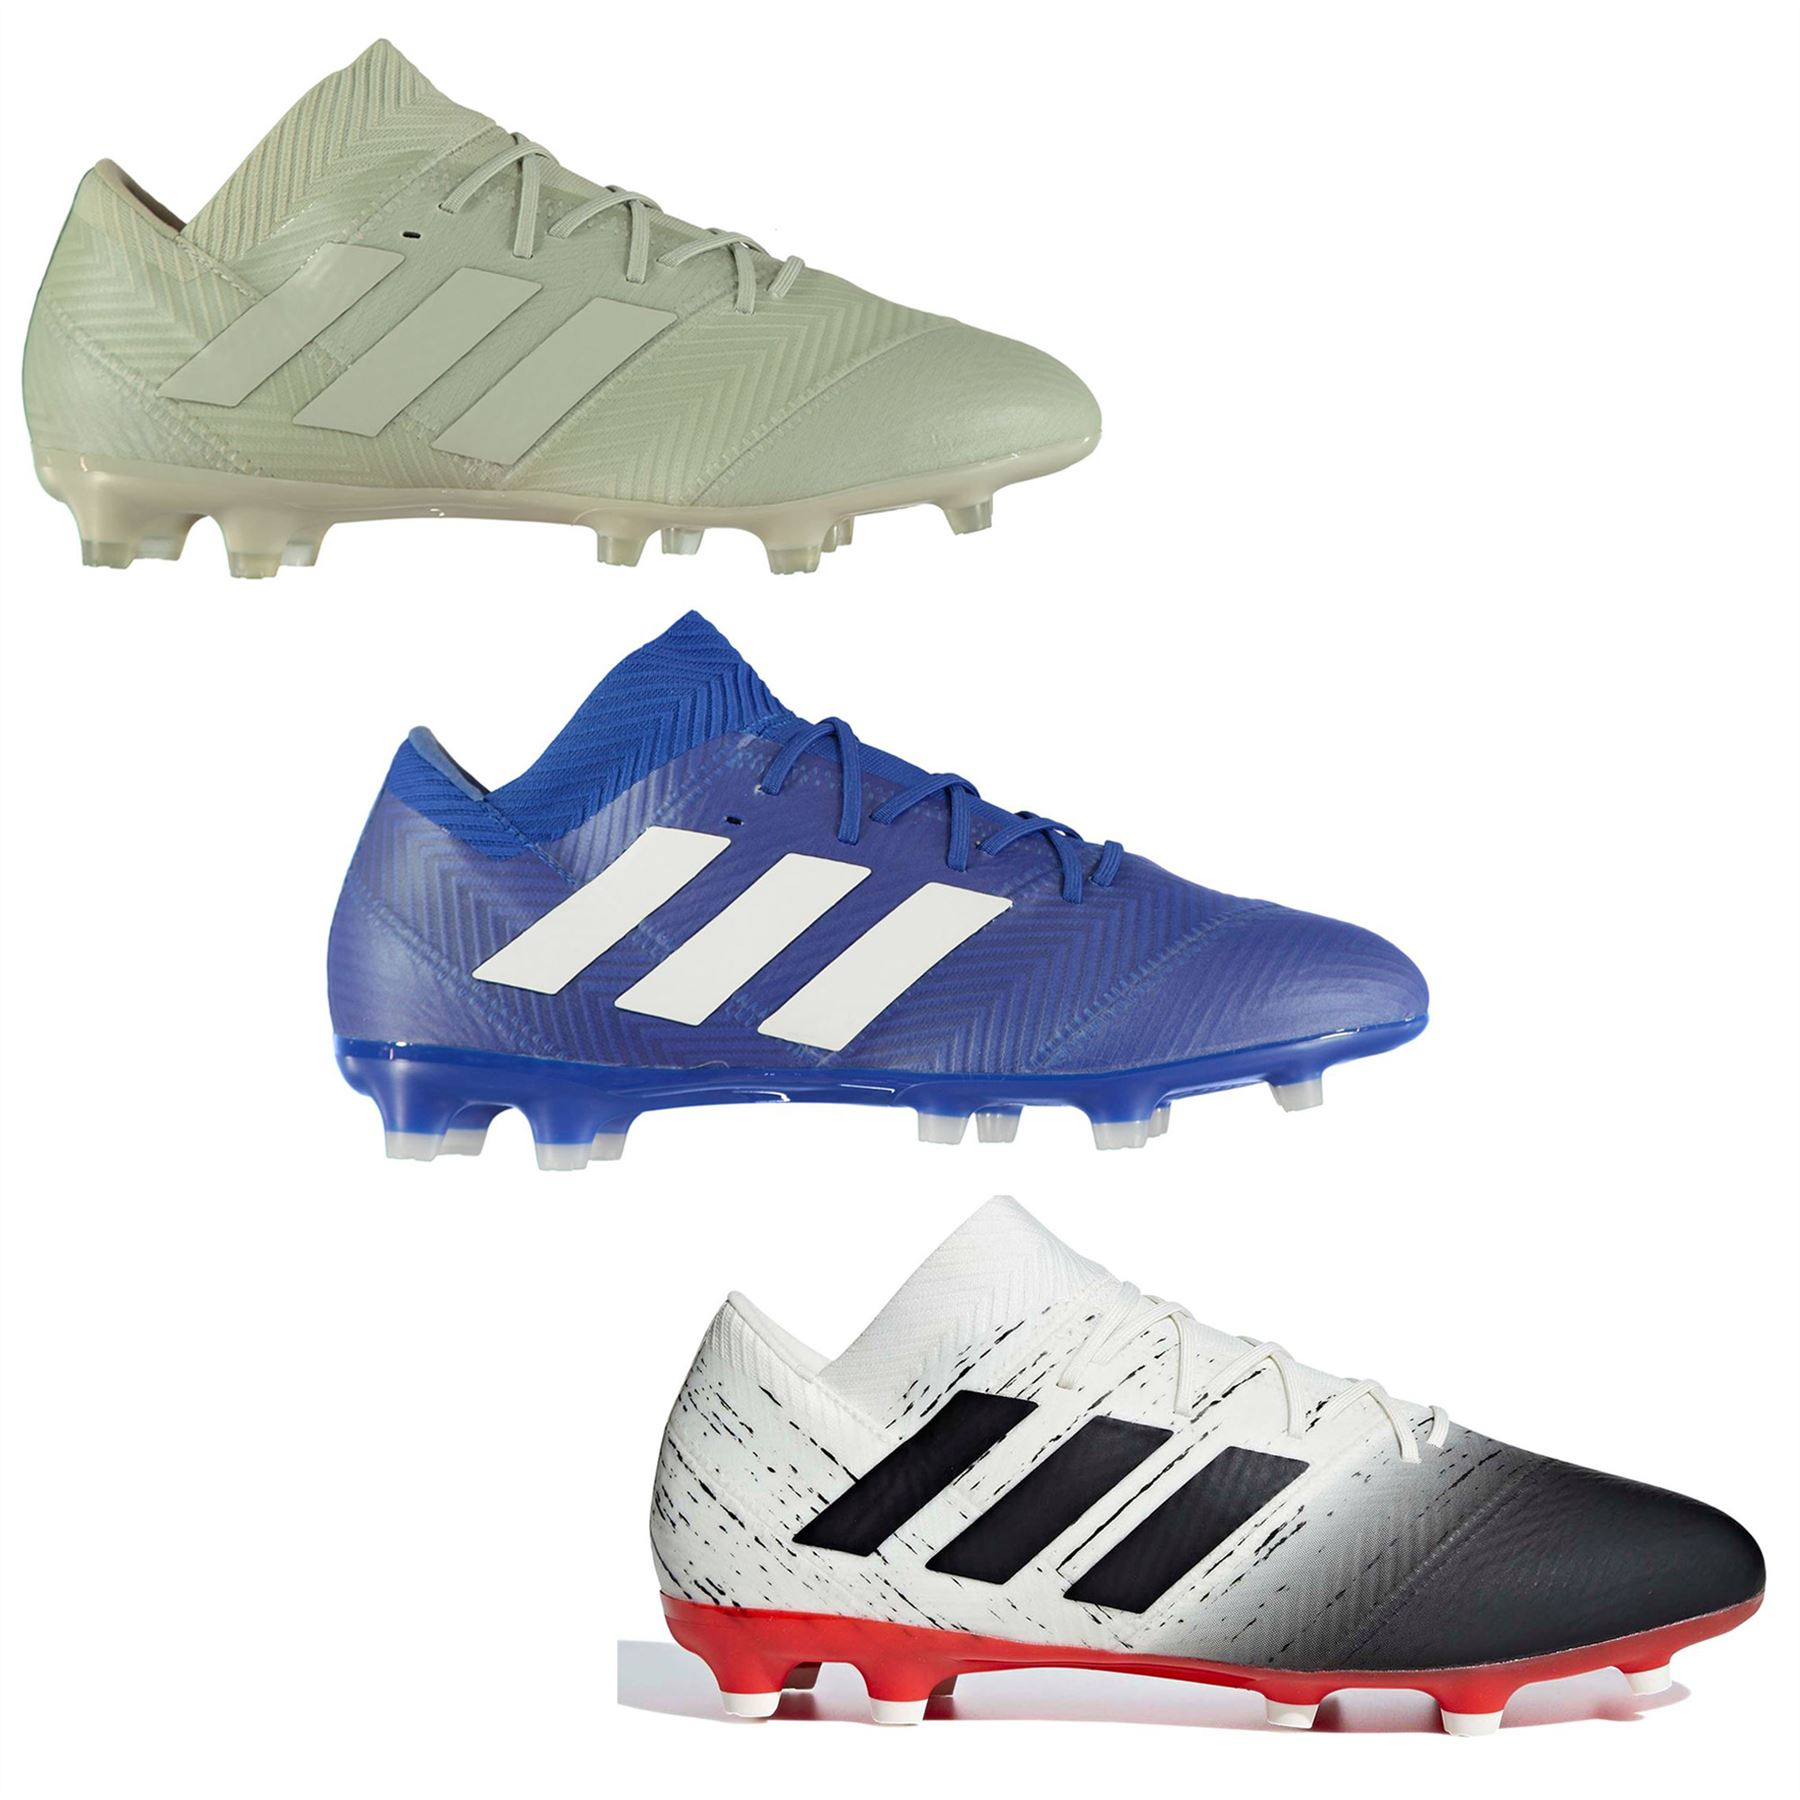 f79c892a0 ... adidas Nemeziz 18.2 FG Firm Ground Football Boots Mens Soccer Shoes  Cleats ...